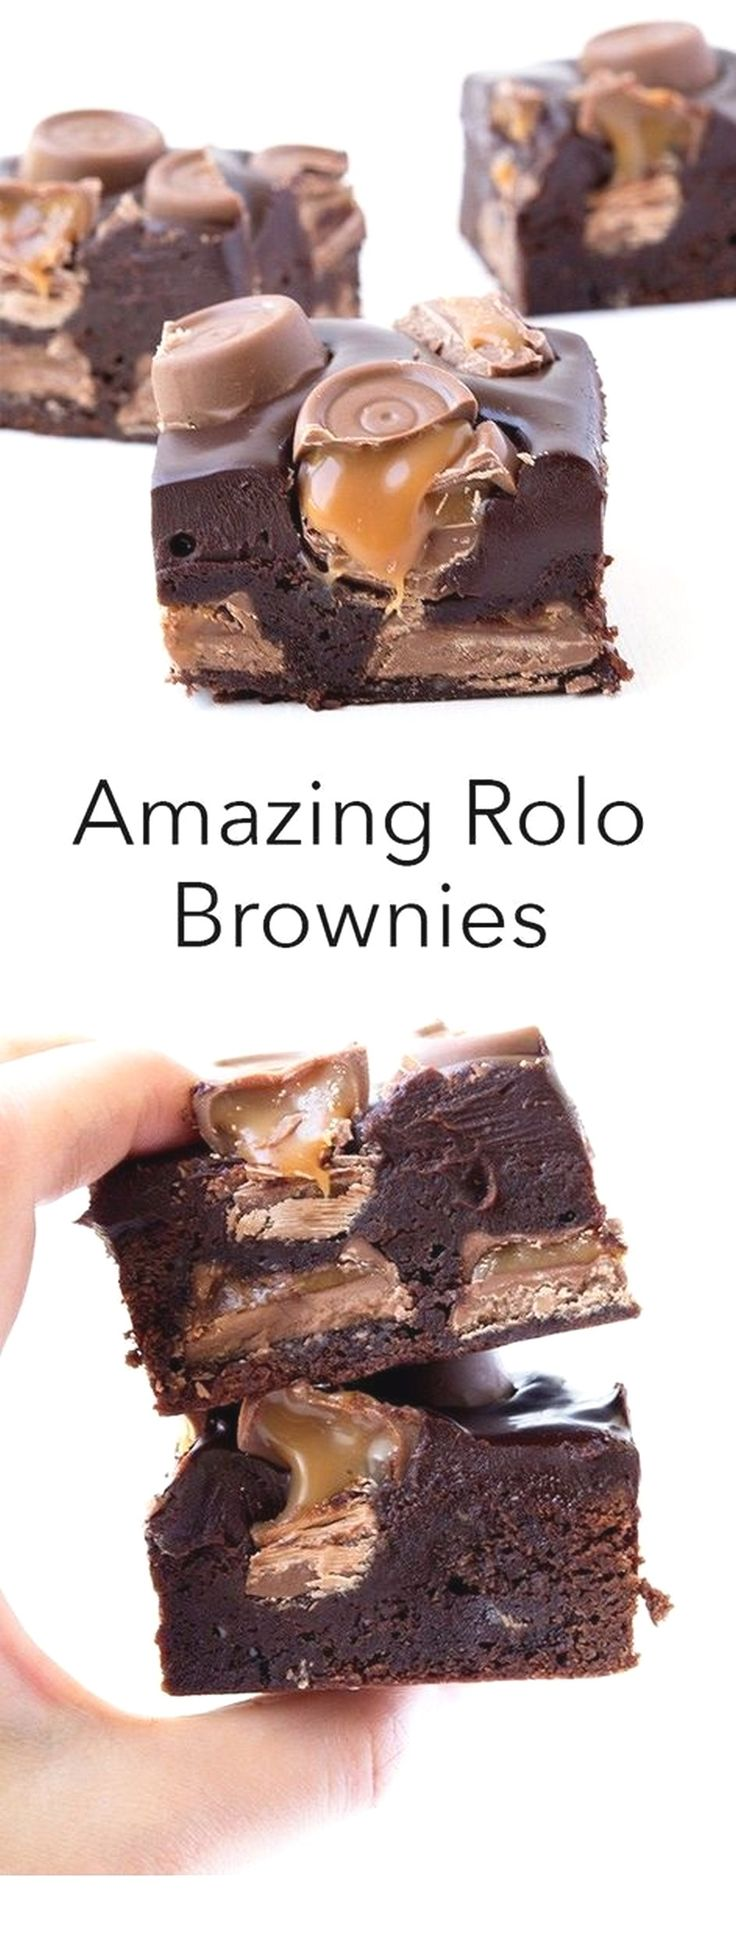 Amazing Rolo Brownies   Baking Recipes